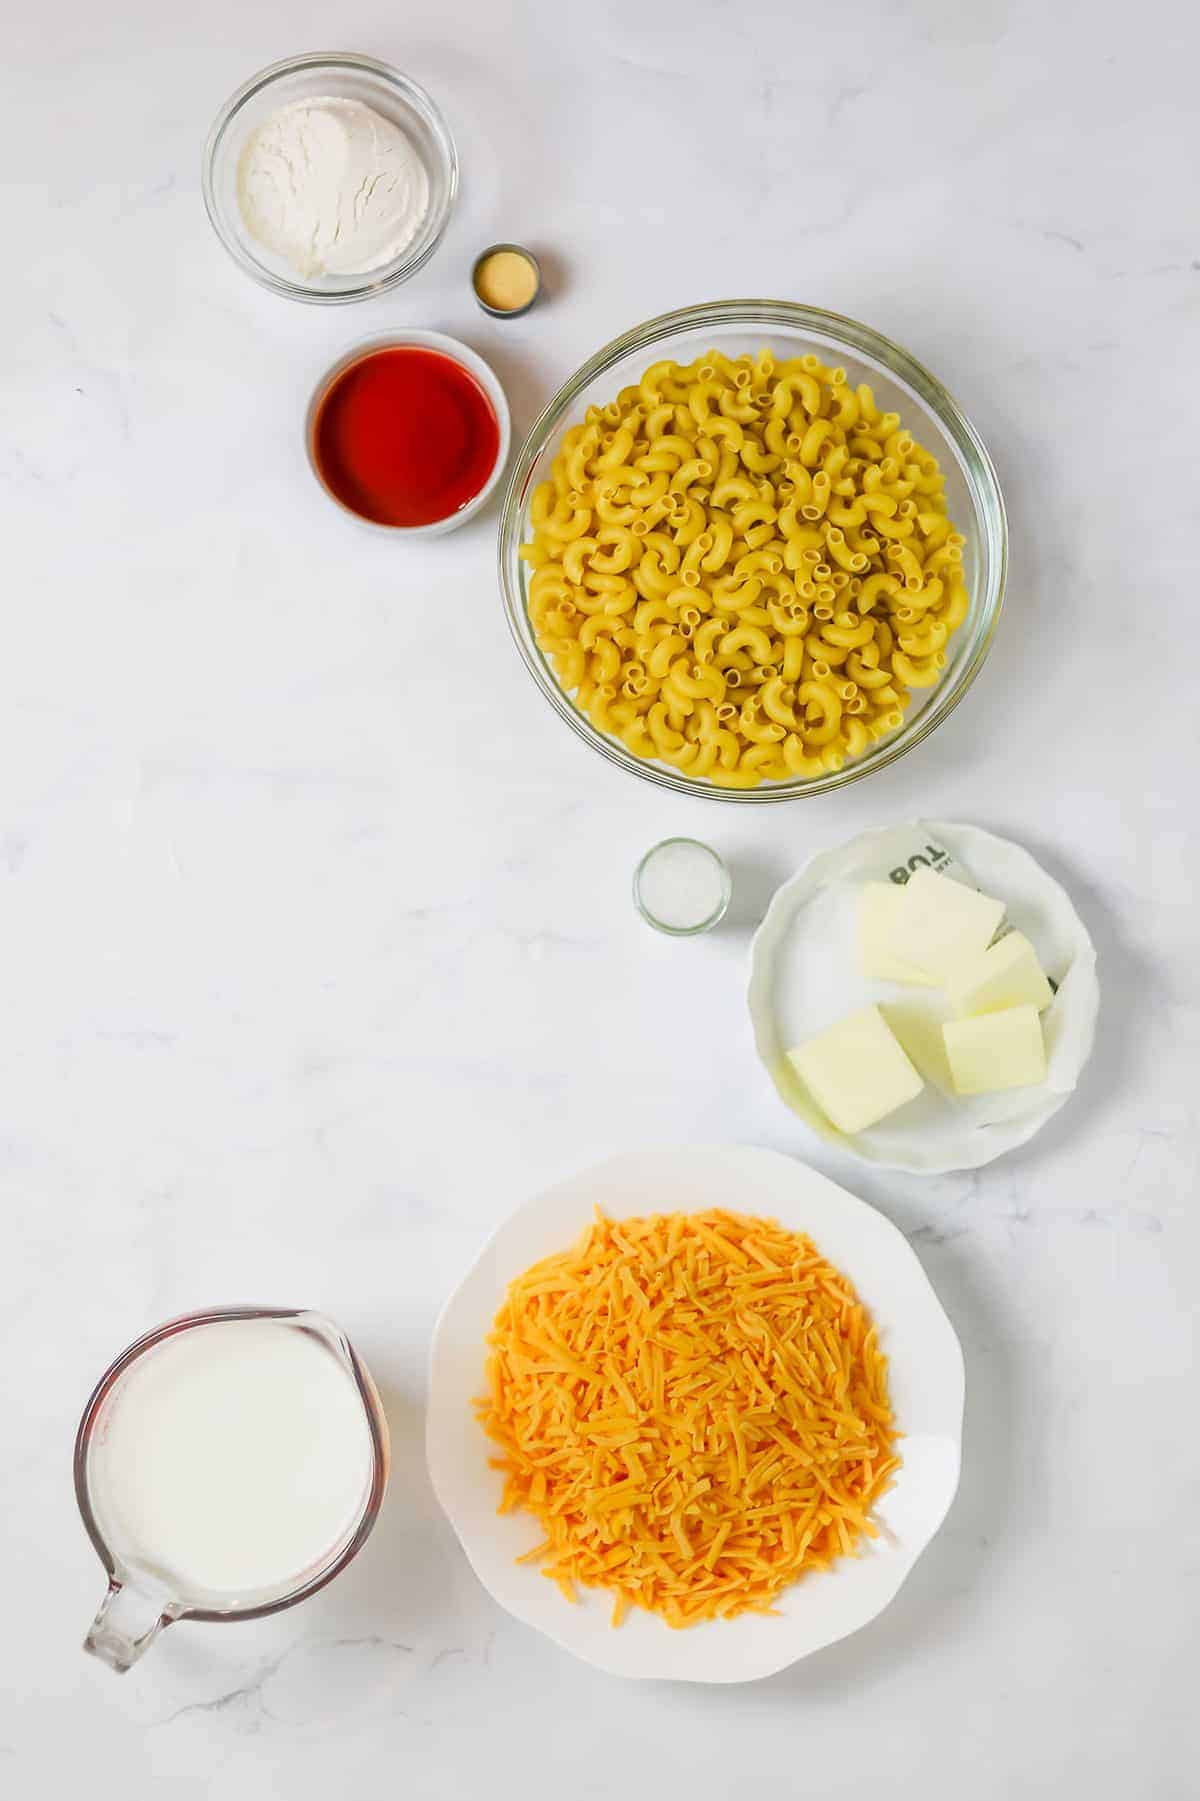 mac and cheese ingredients in bowls, ready to be mixed together